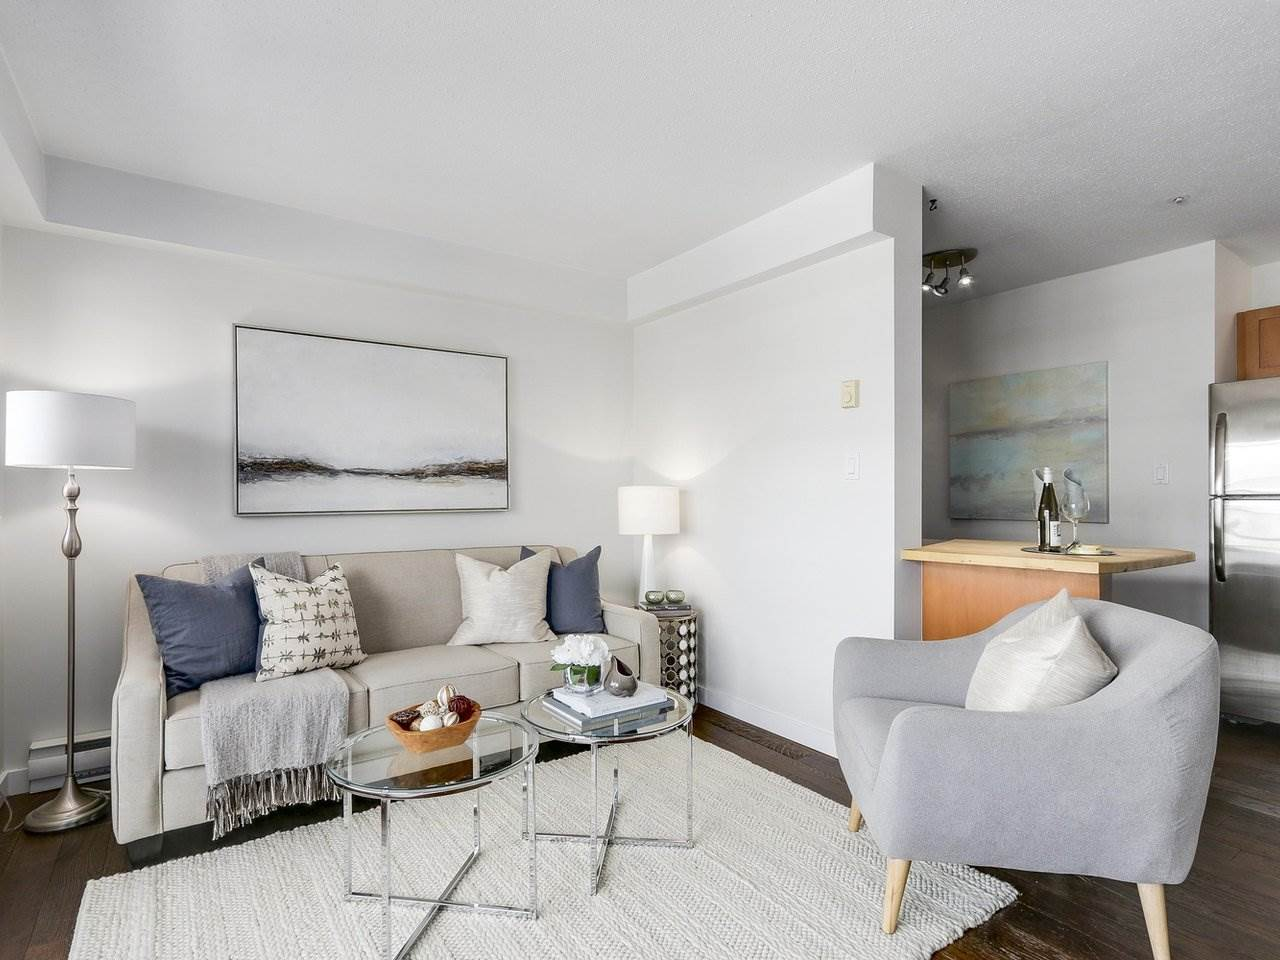 """Main Photo: 102 3788 W 10TH Avenue in Vancouver: Point Grey Condo for sale in """"The Grey Point"""" (Vancouver West)  : MLS® # R2169435"""